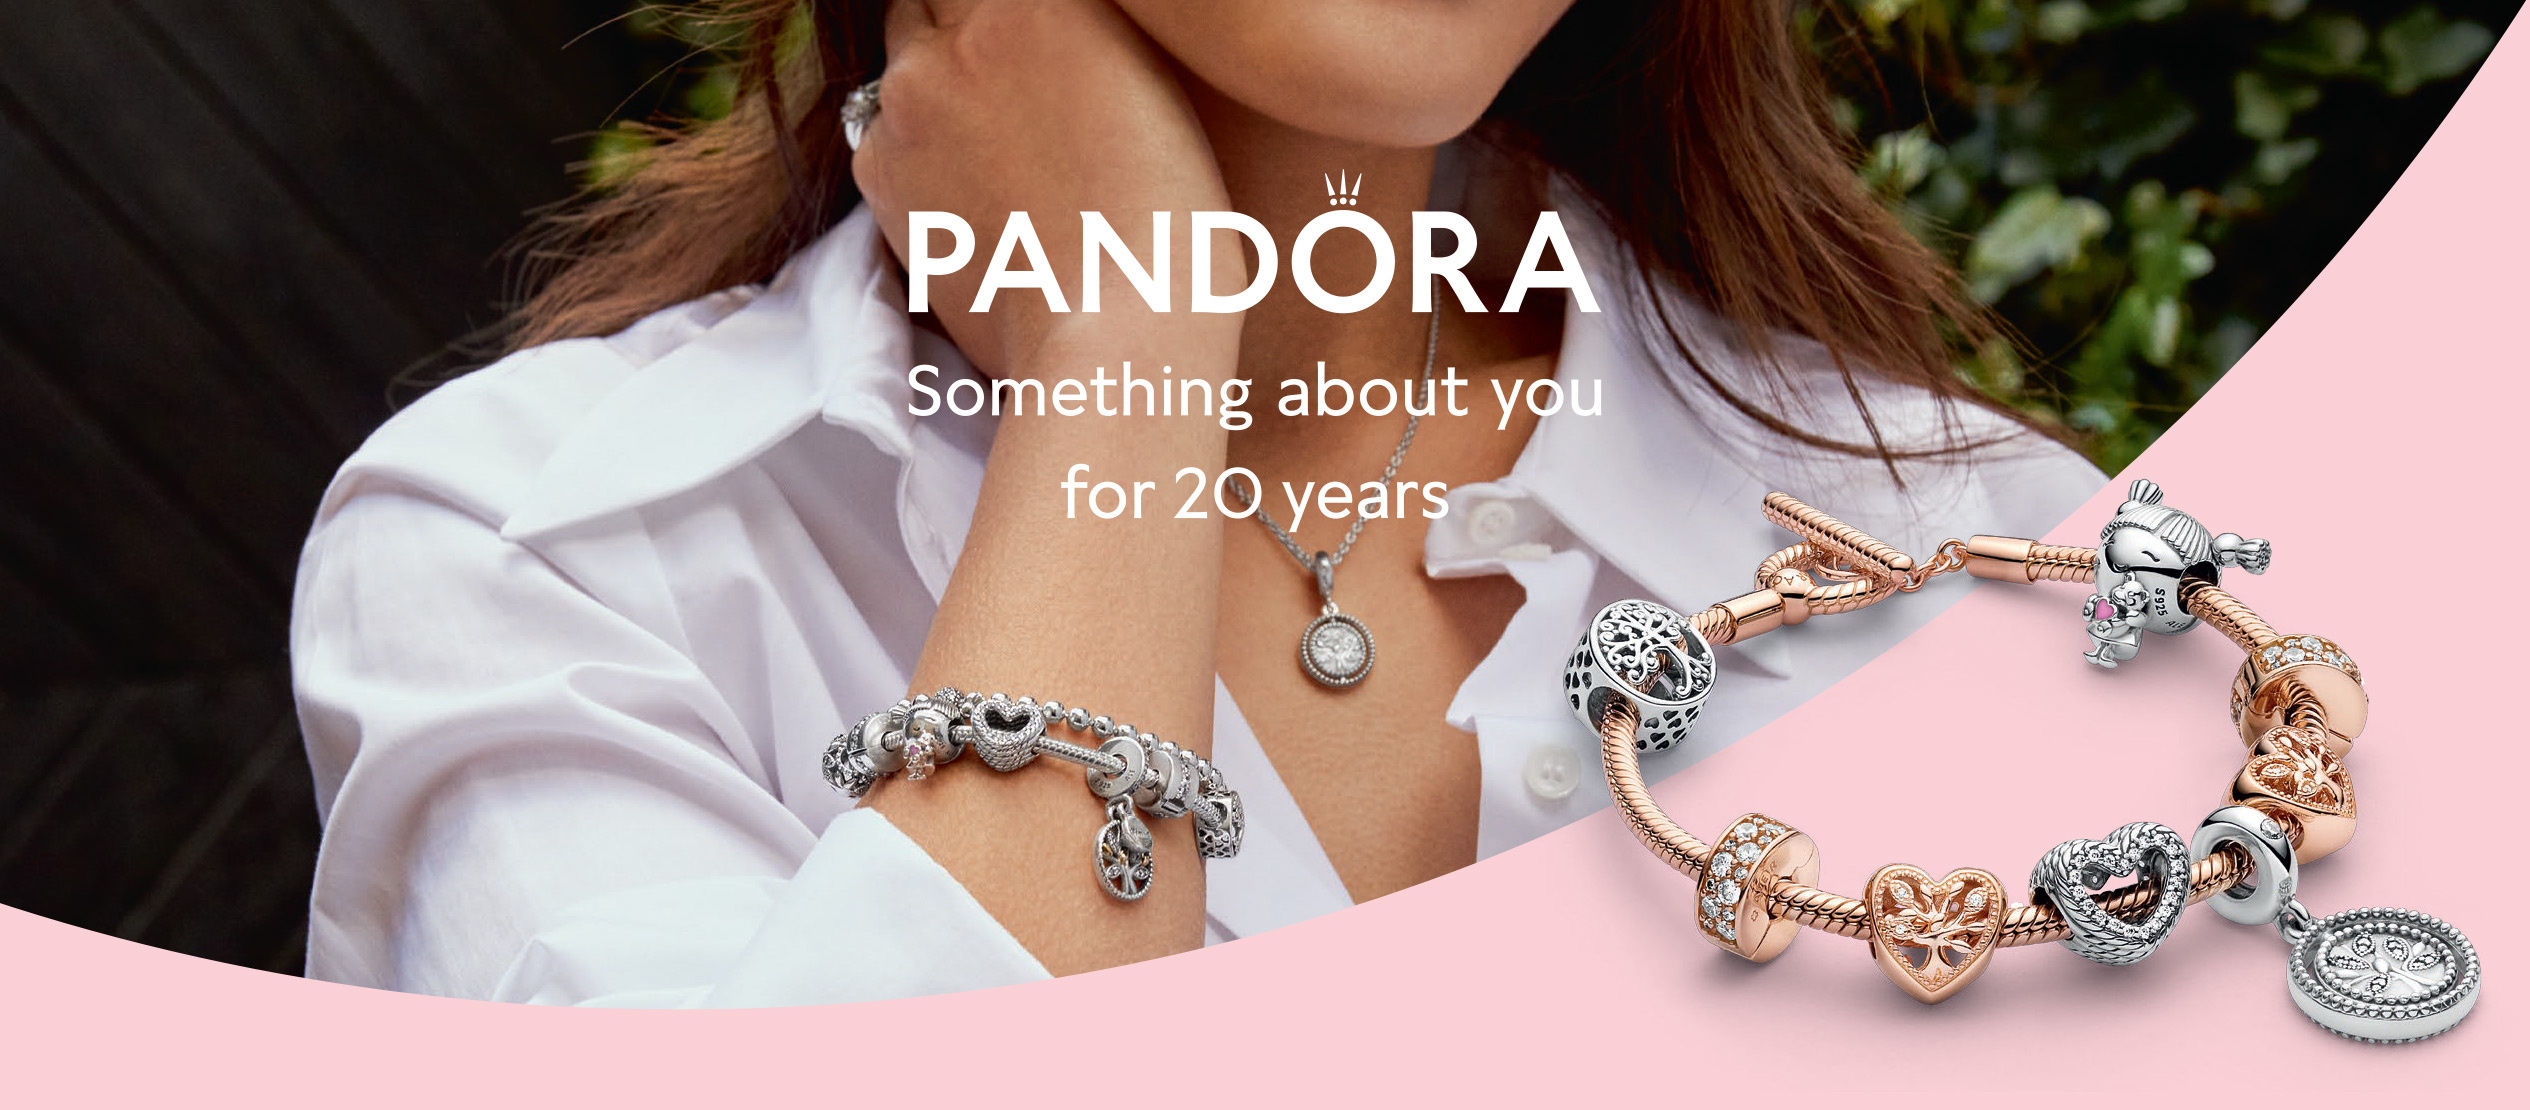 Pandora Jewellery at Graziella